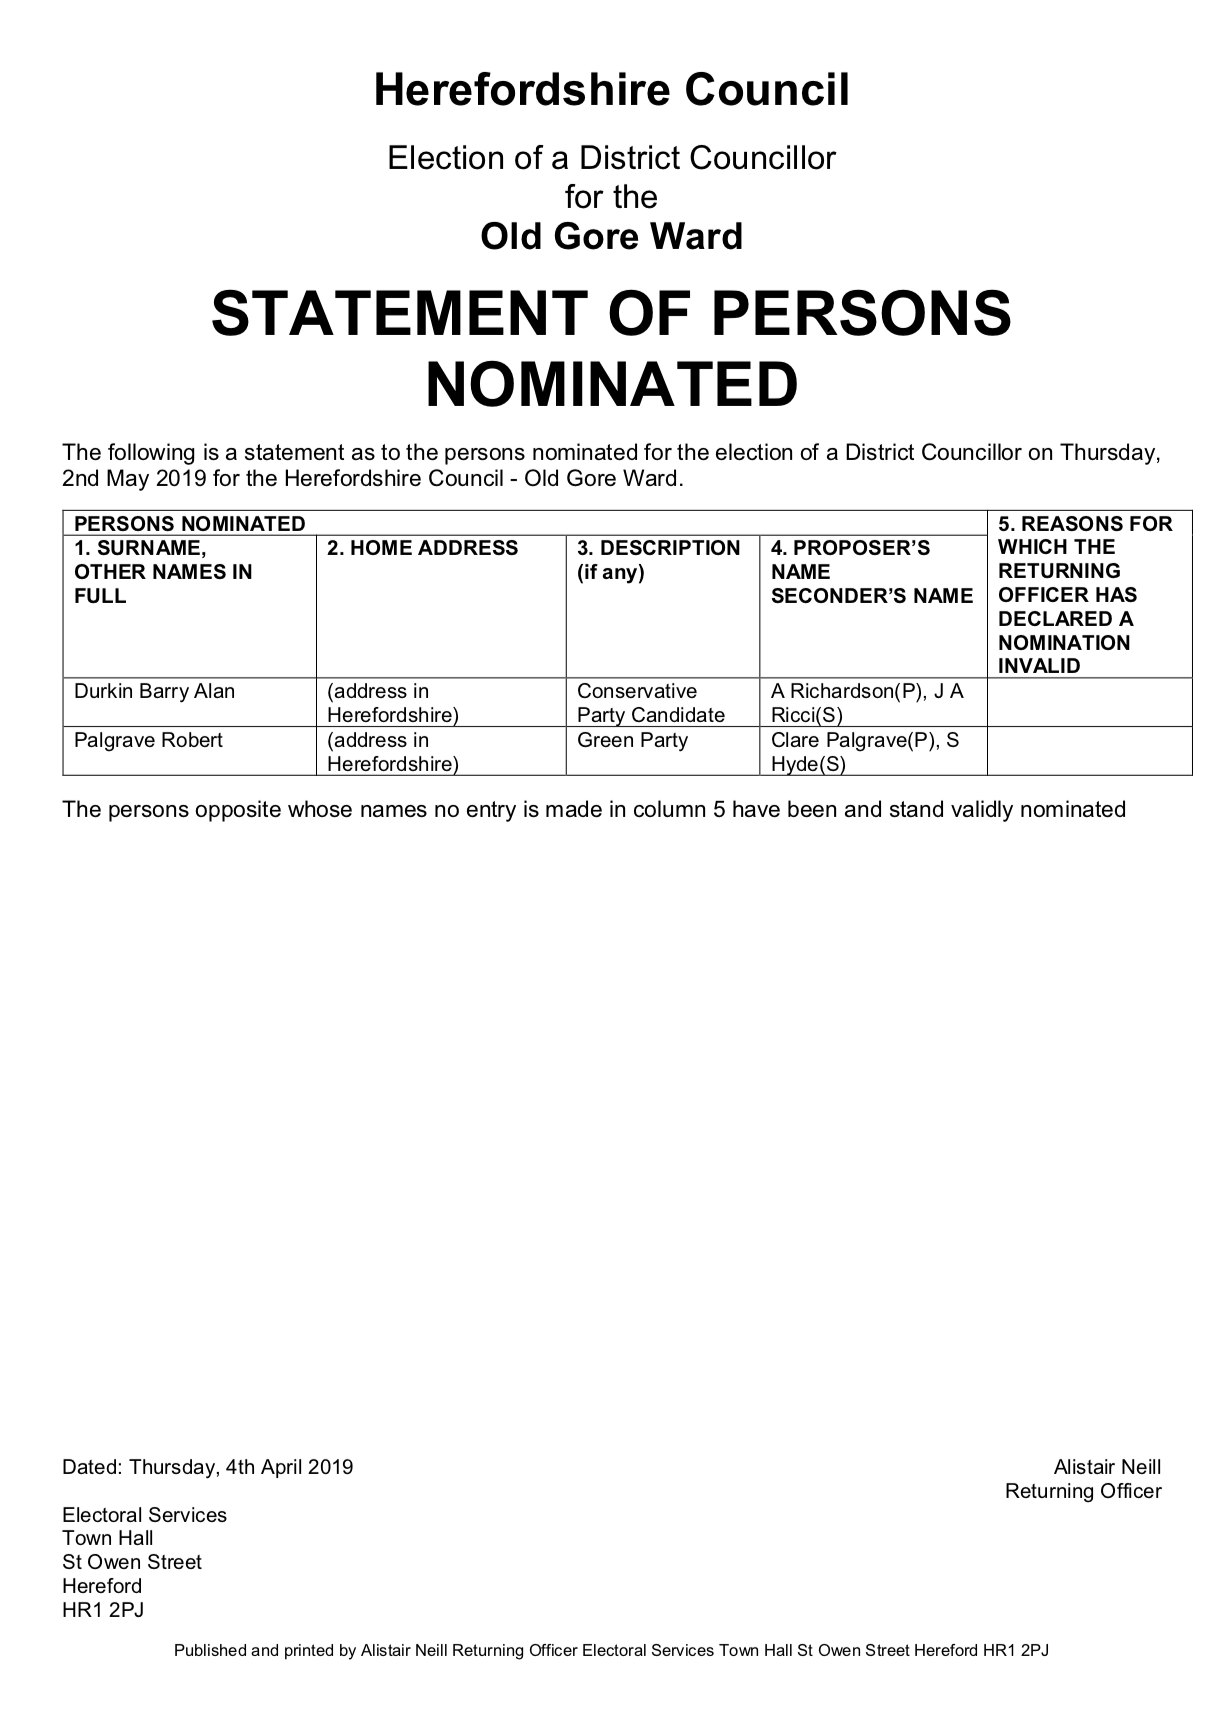 Statement of persons nominated preview